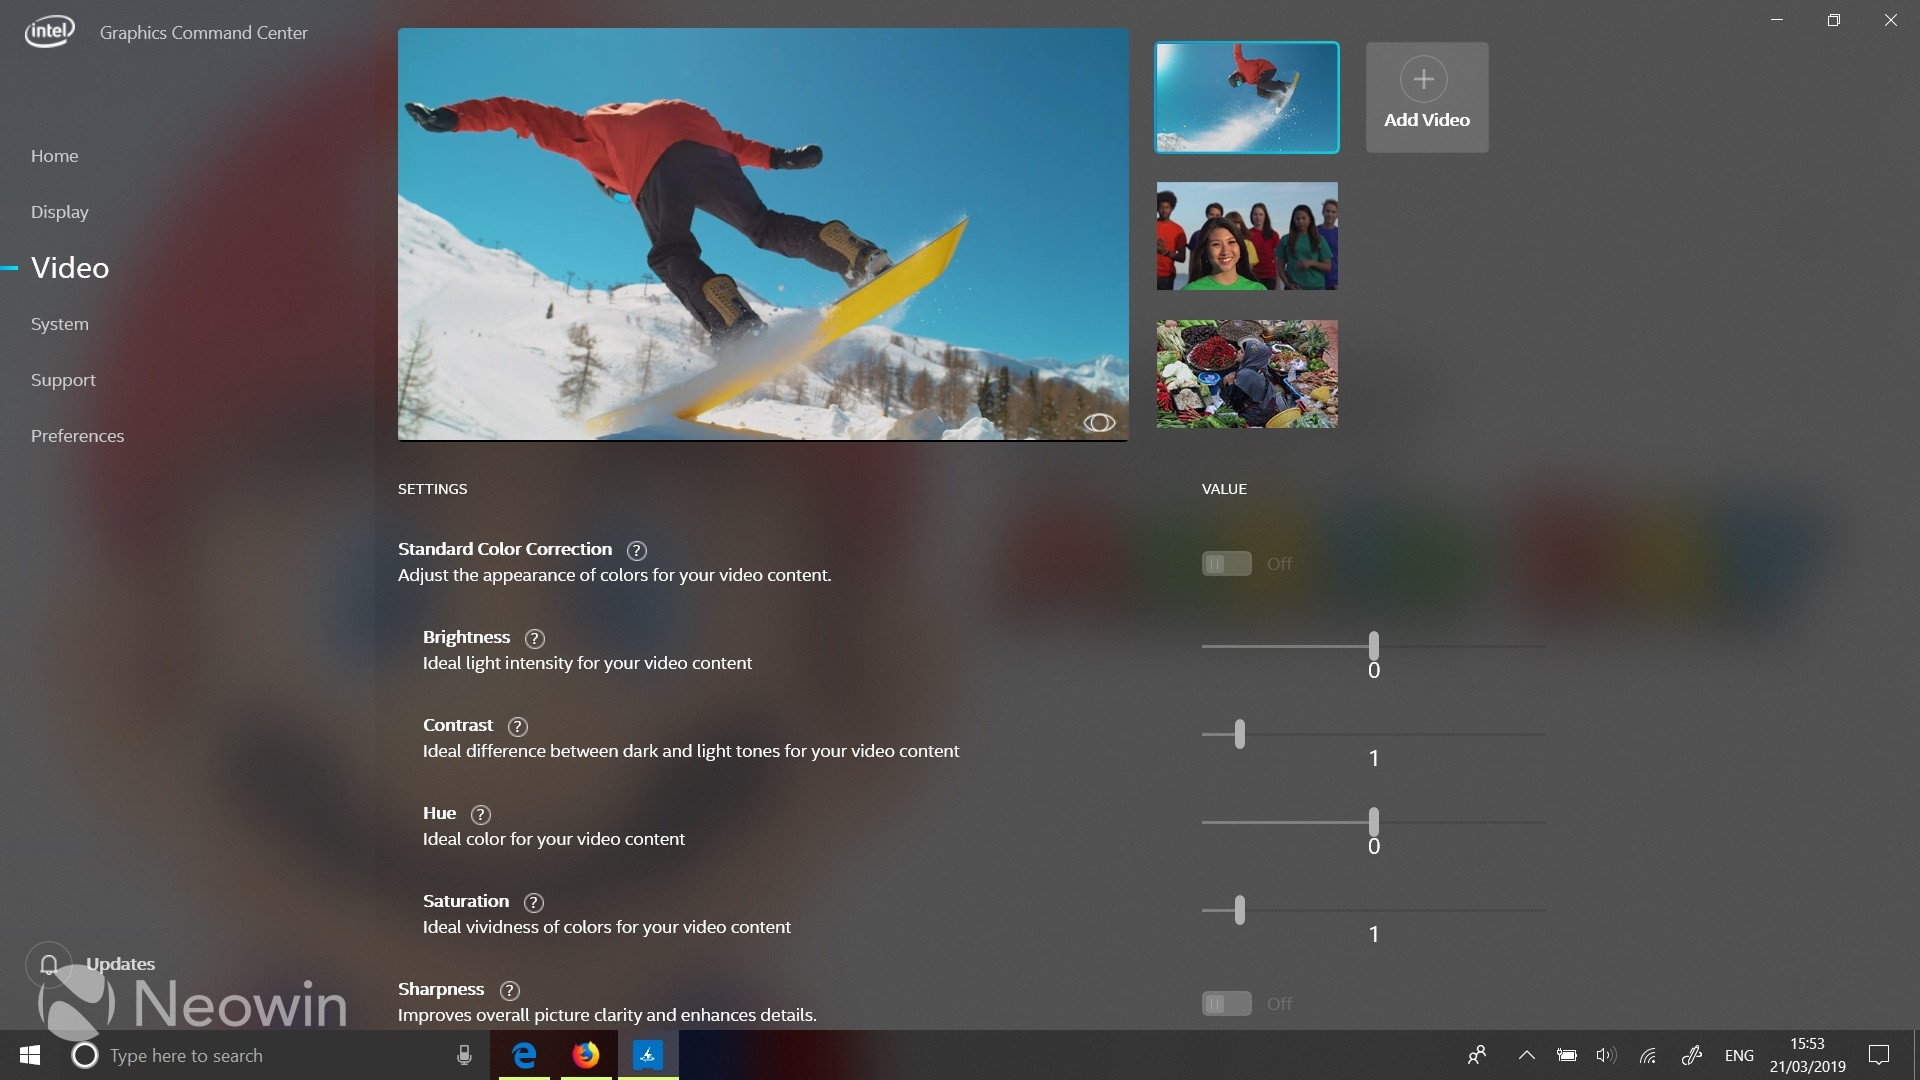 Intel introduces new Graphics Command Center app for Windows